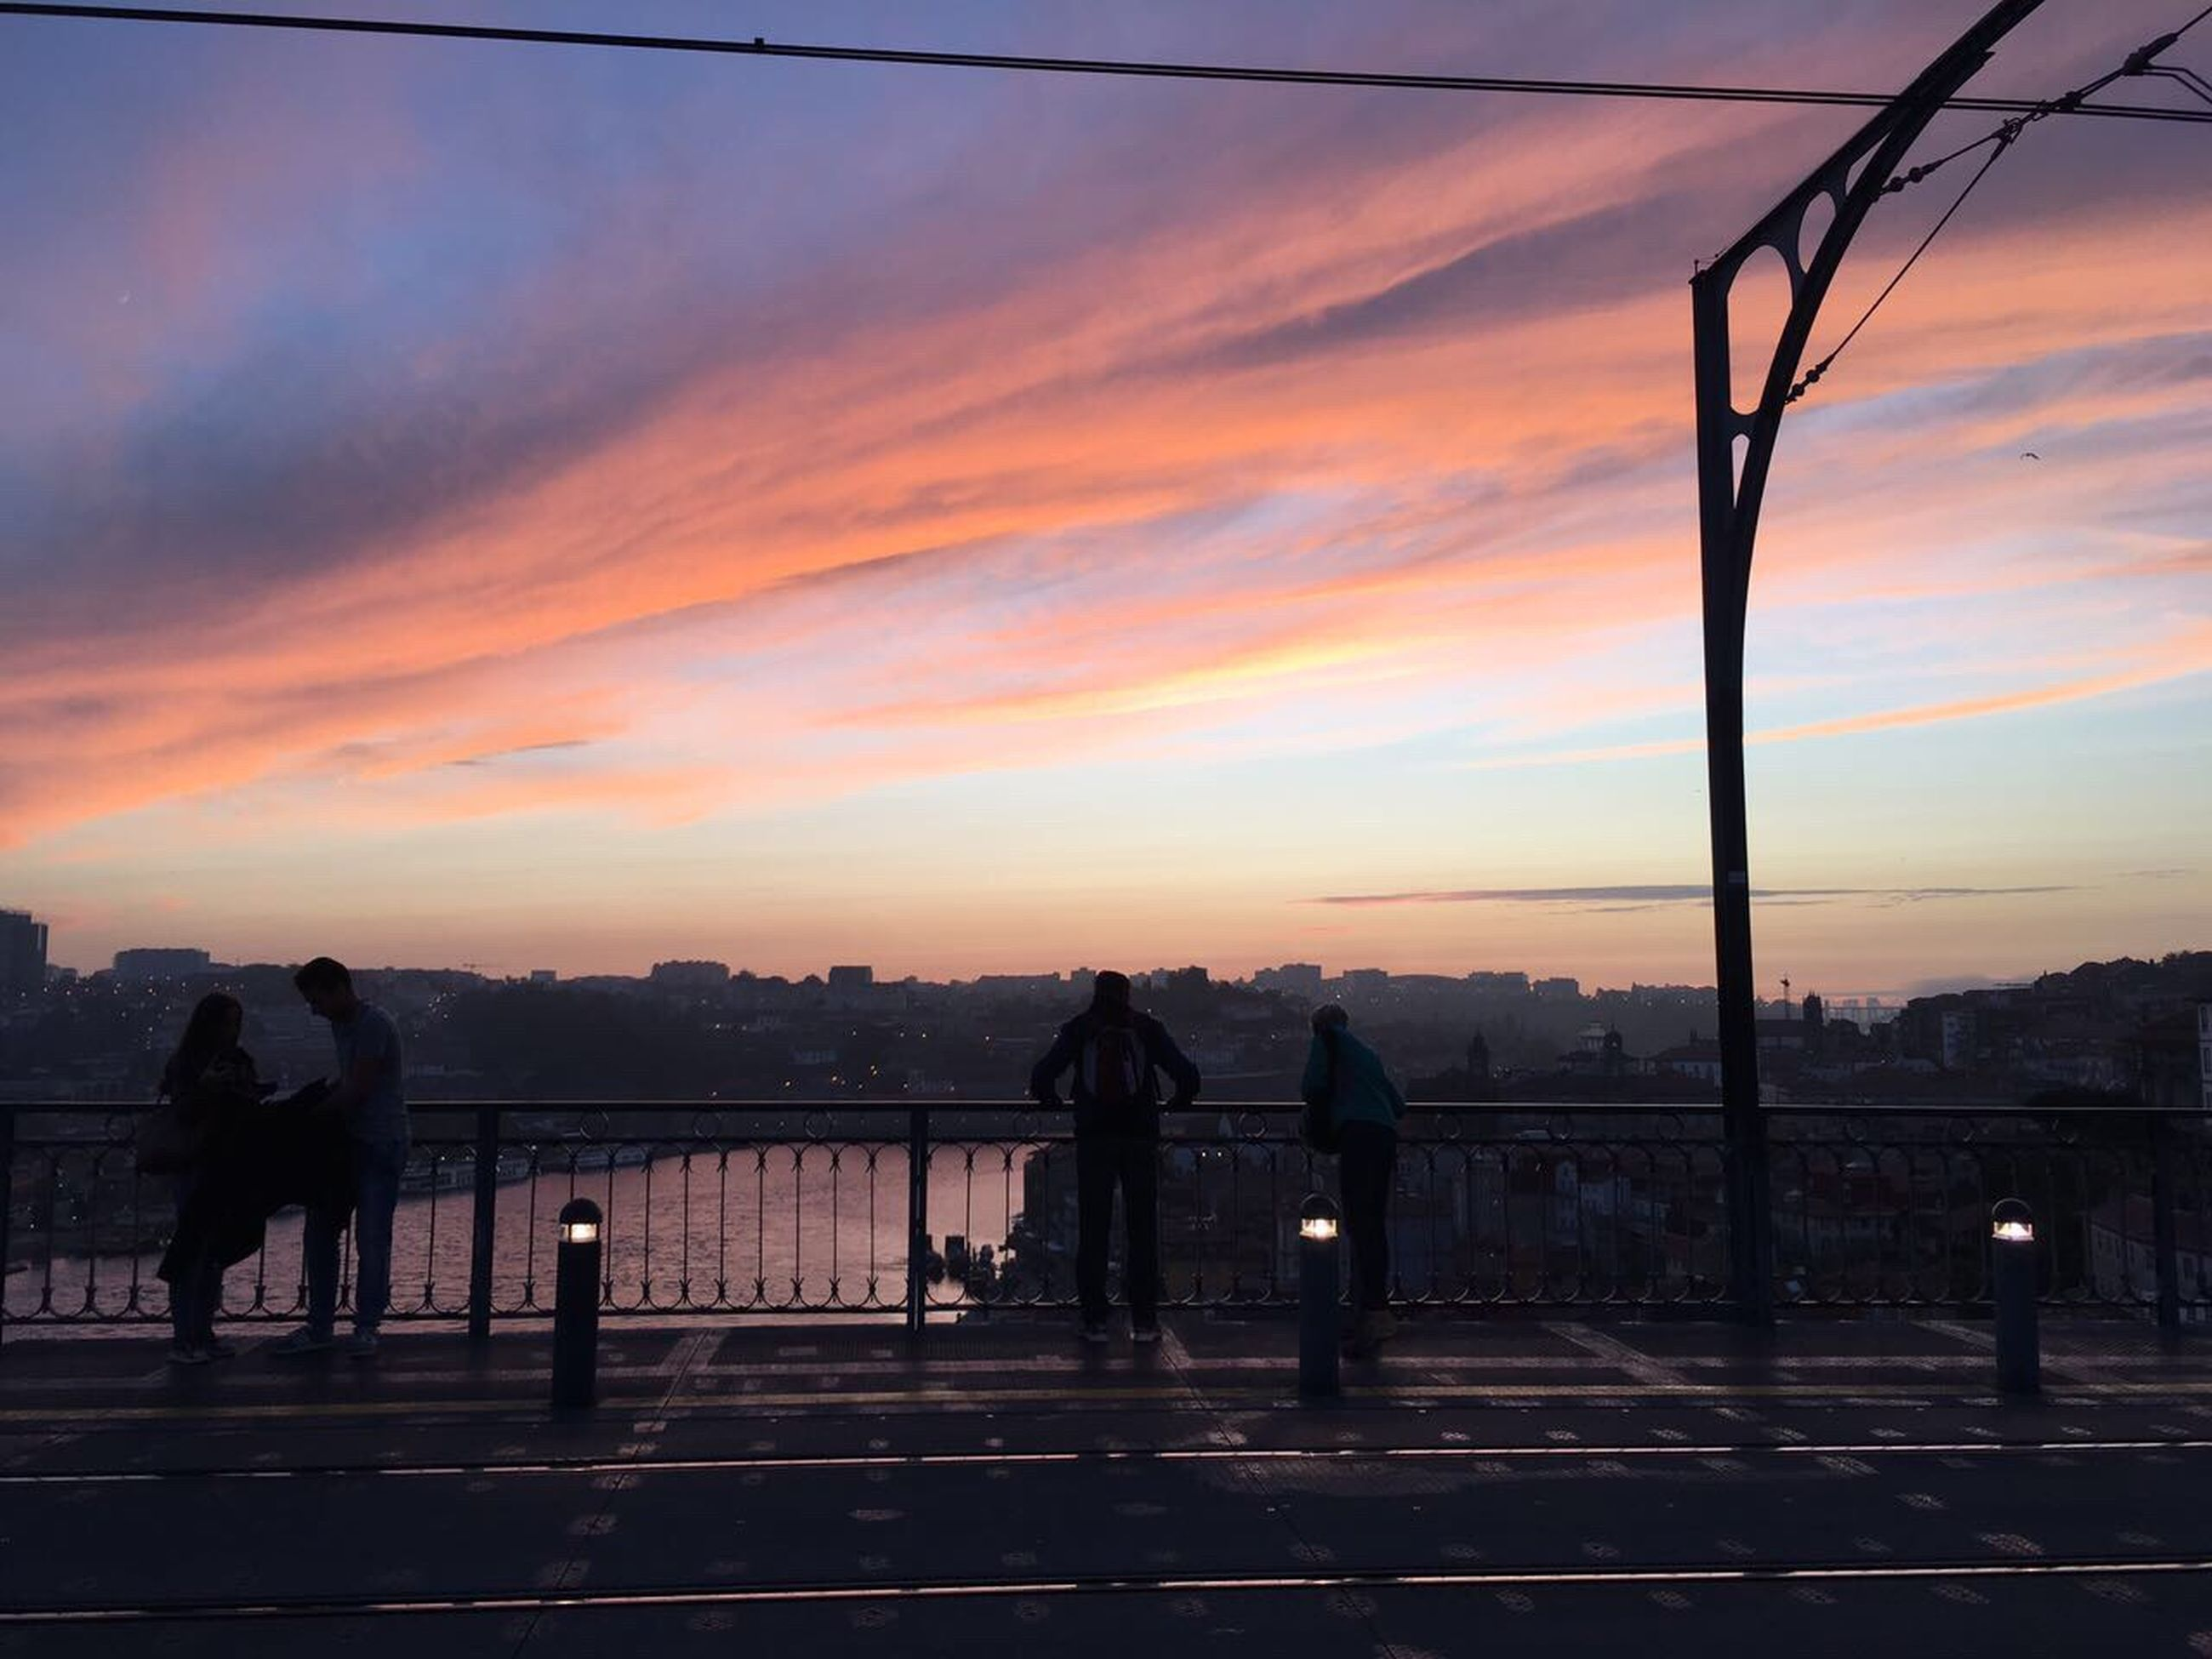 sunset, sky, orange color, real people, cloud - sky, group of people, nature, lifestyles, street, silhouette, men, beauty in nature, leisure activity, standing, outdoors, city, group, people, scenics - nature, transportation